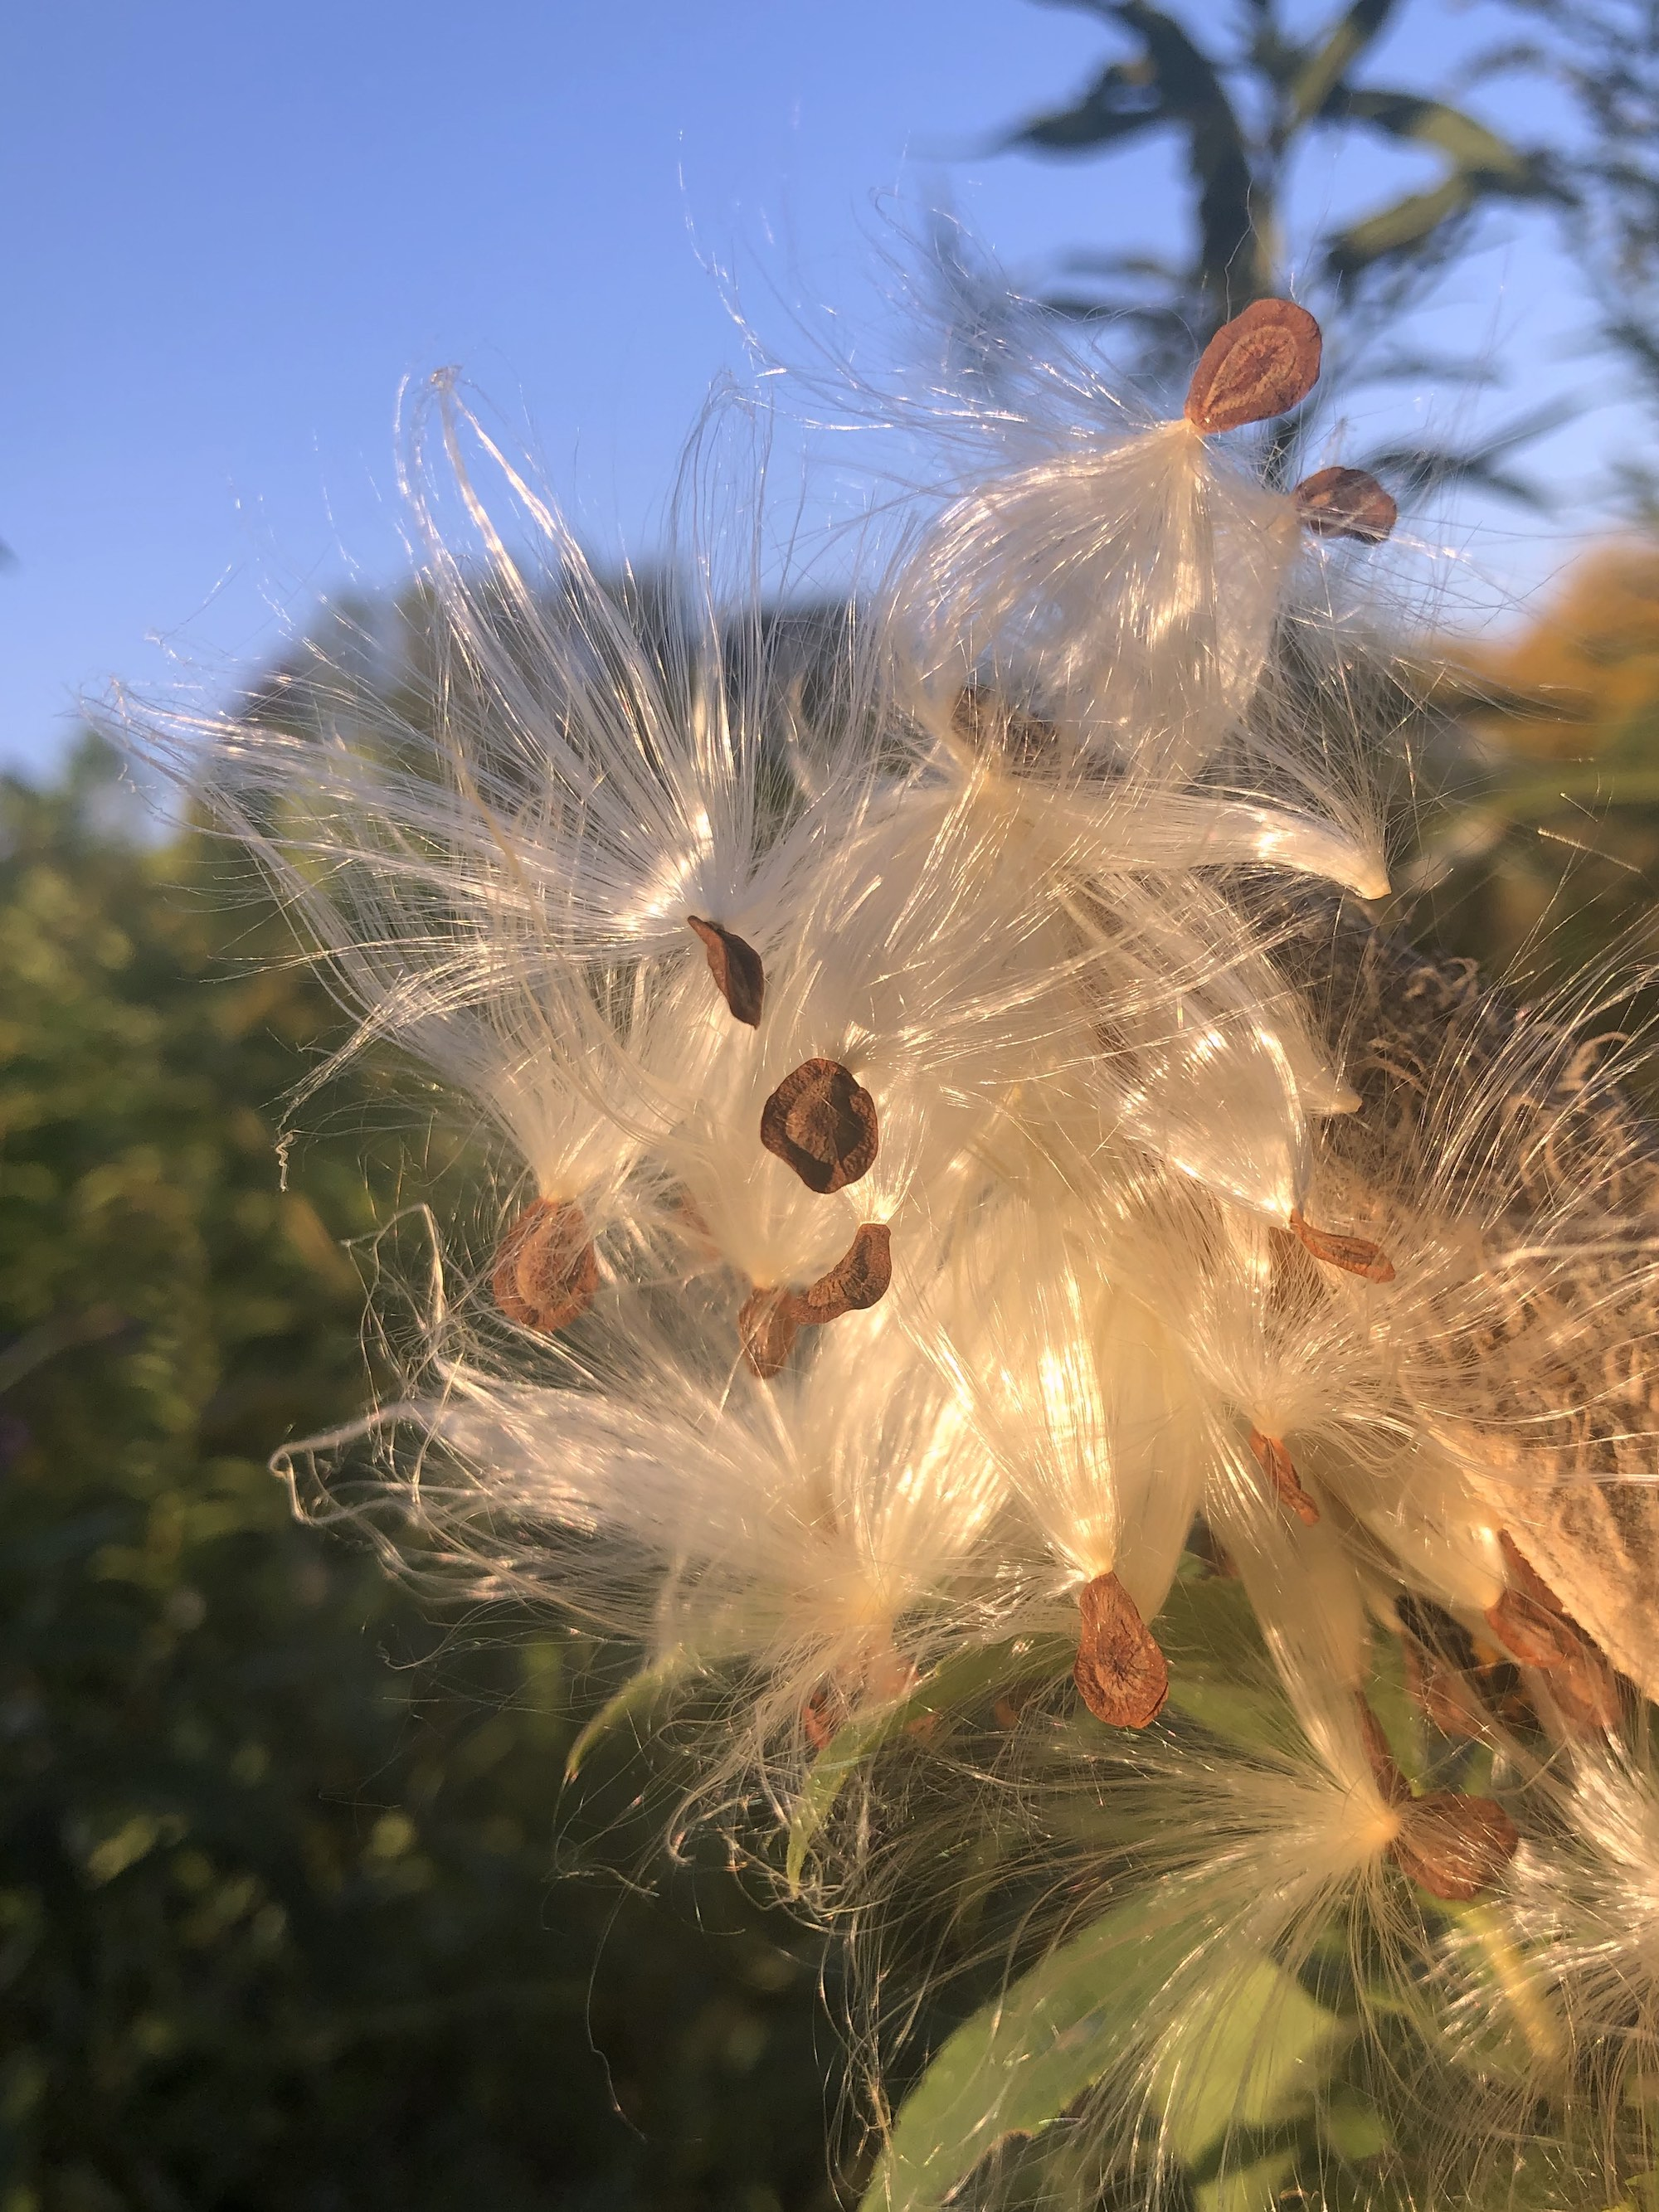 Common Milkweed on shore of Marion Dunn Pond on September 25, 2020.